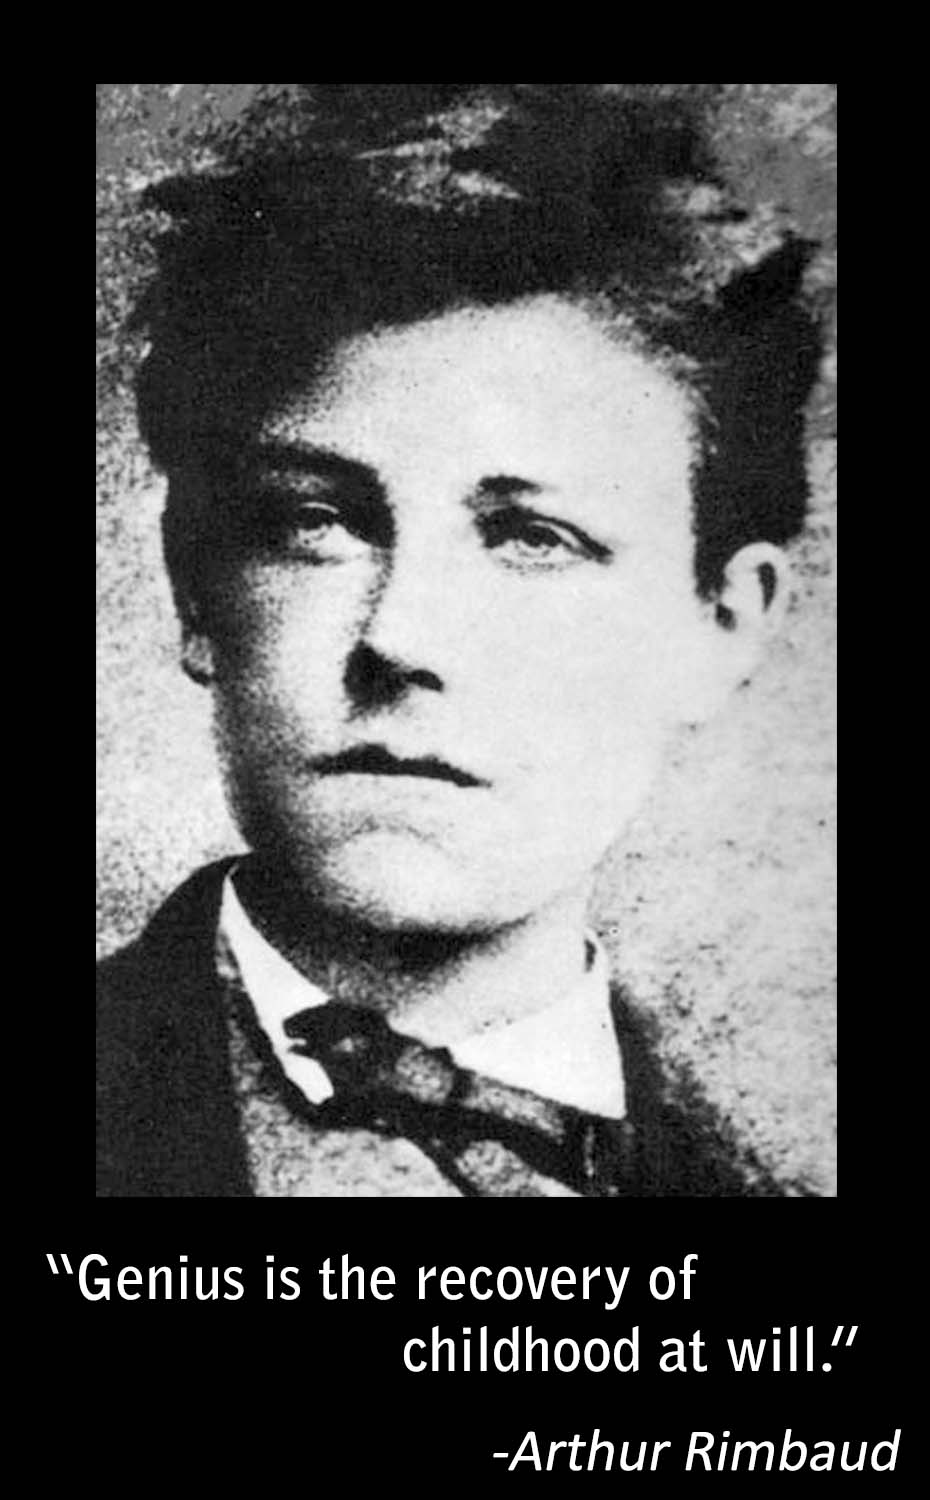 a biography of french poet arthur rimbaud The many faces of rimbaud in graham robb's biography  life and atrocious  death of jean nicolas arthur rimbaud will never reach conclusion  he then  goes on to list the poet's multiple incarnations, his avatars, his devotees,  with  rimbaud, to annex great swathes of 19th-century french literature.